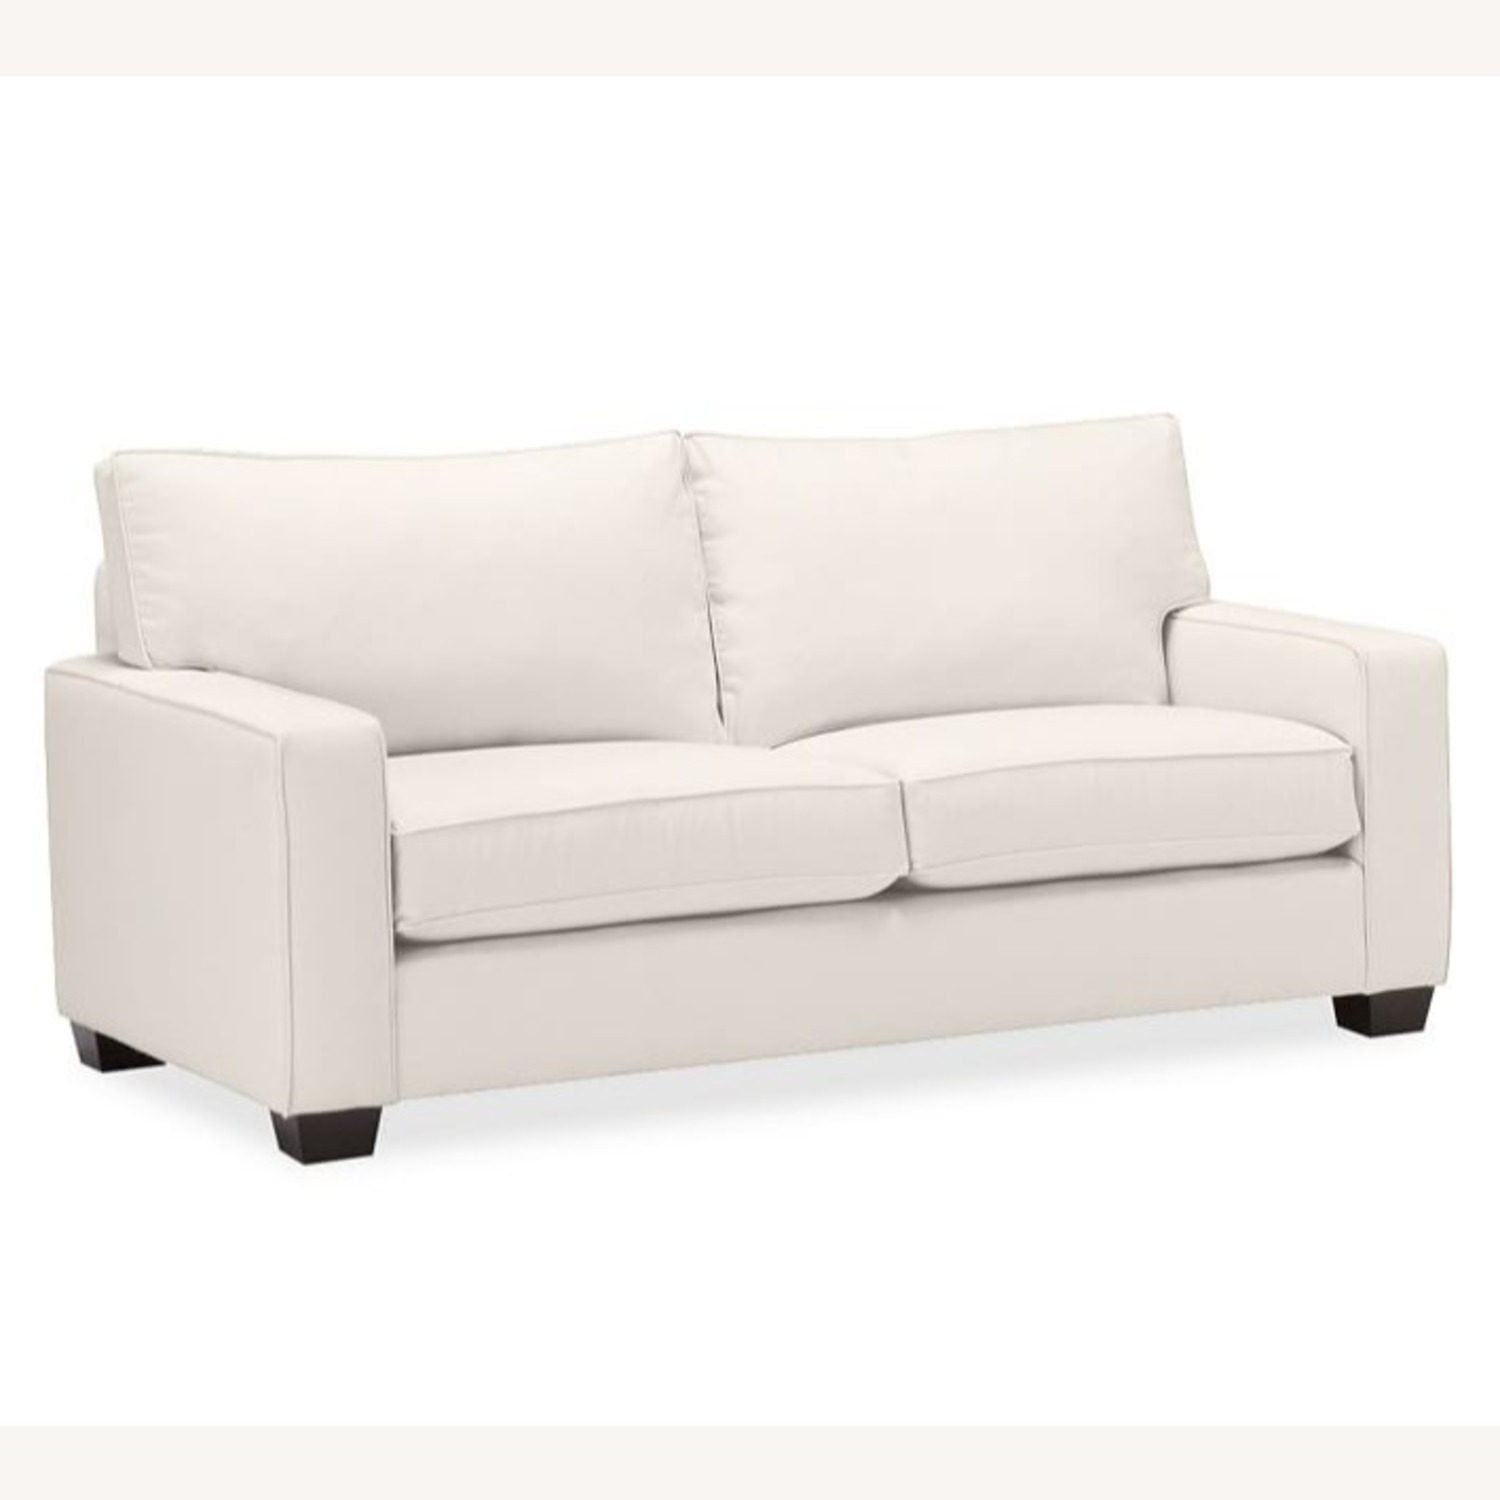 """Pottery Barn Comfort Square Arm Upholstered Sofa 78"""""""